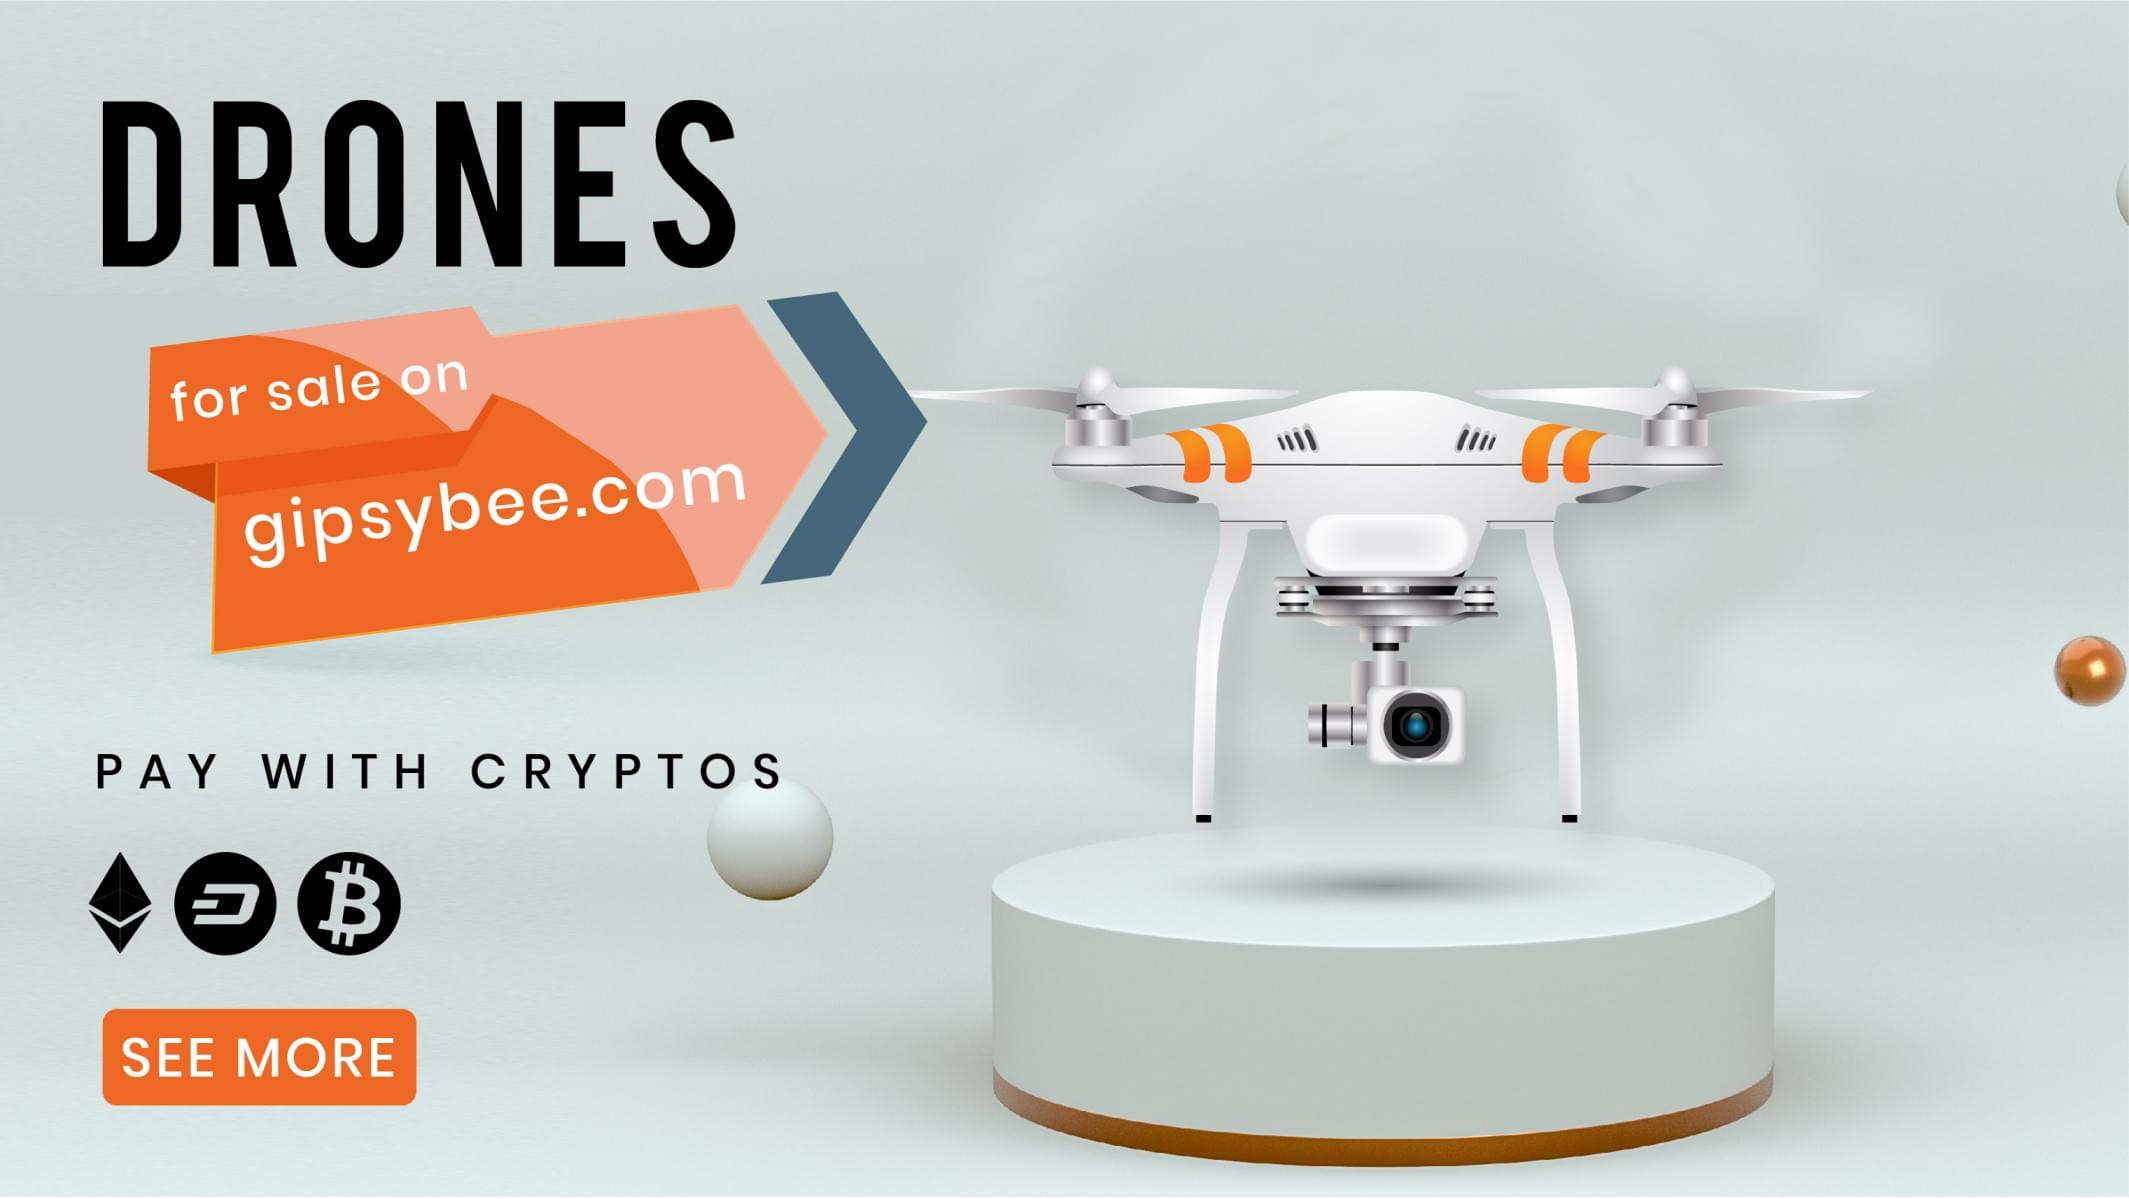 Click to see our RC Quadcopters for sale in Ethereum on Gipsybee.com with FREE SHIPPING